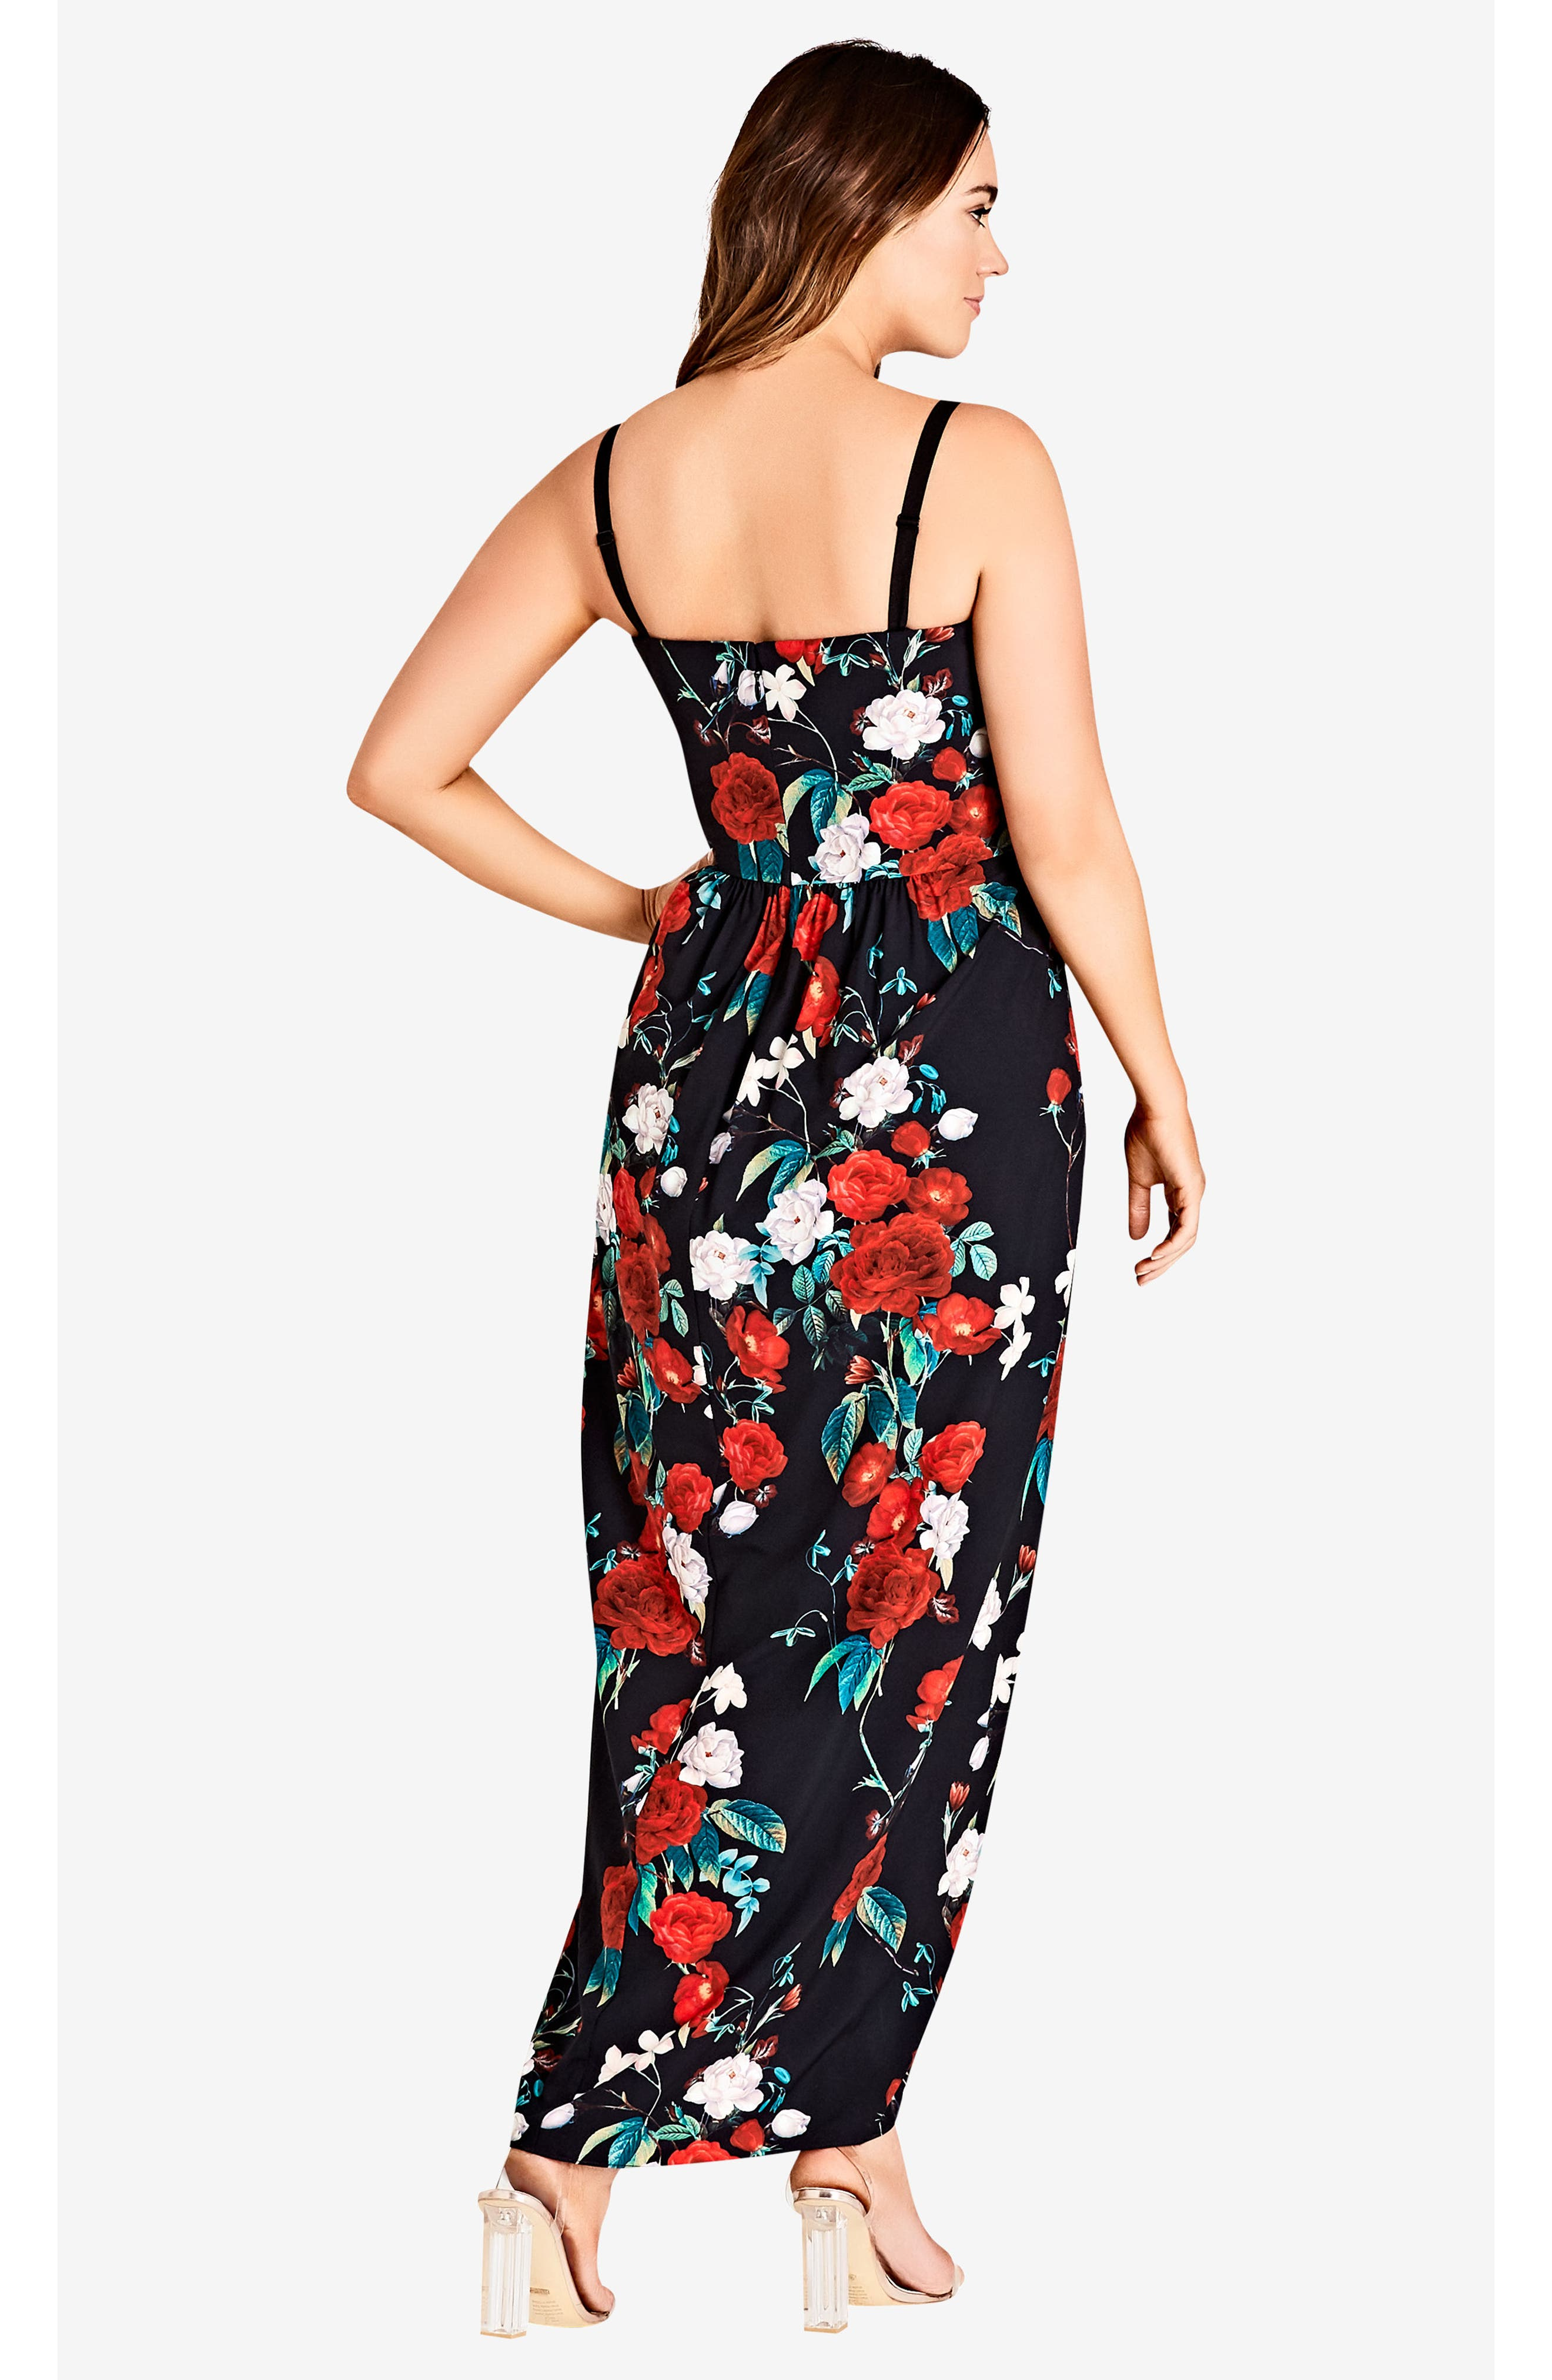 Come Hither Maxi Dress,                             Alternate thumbnail 5, color,                             ROSE ADORE